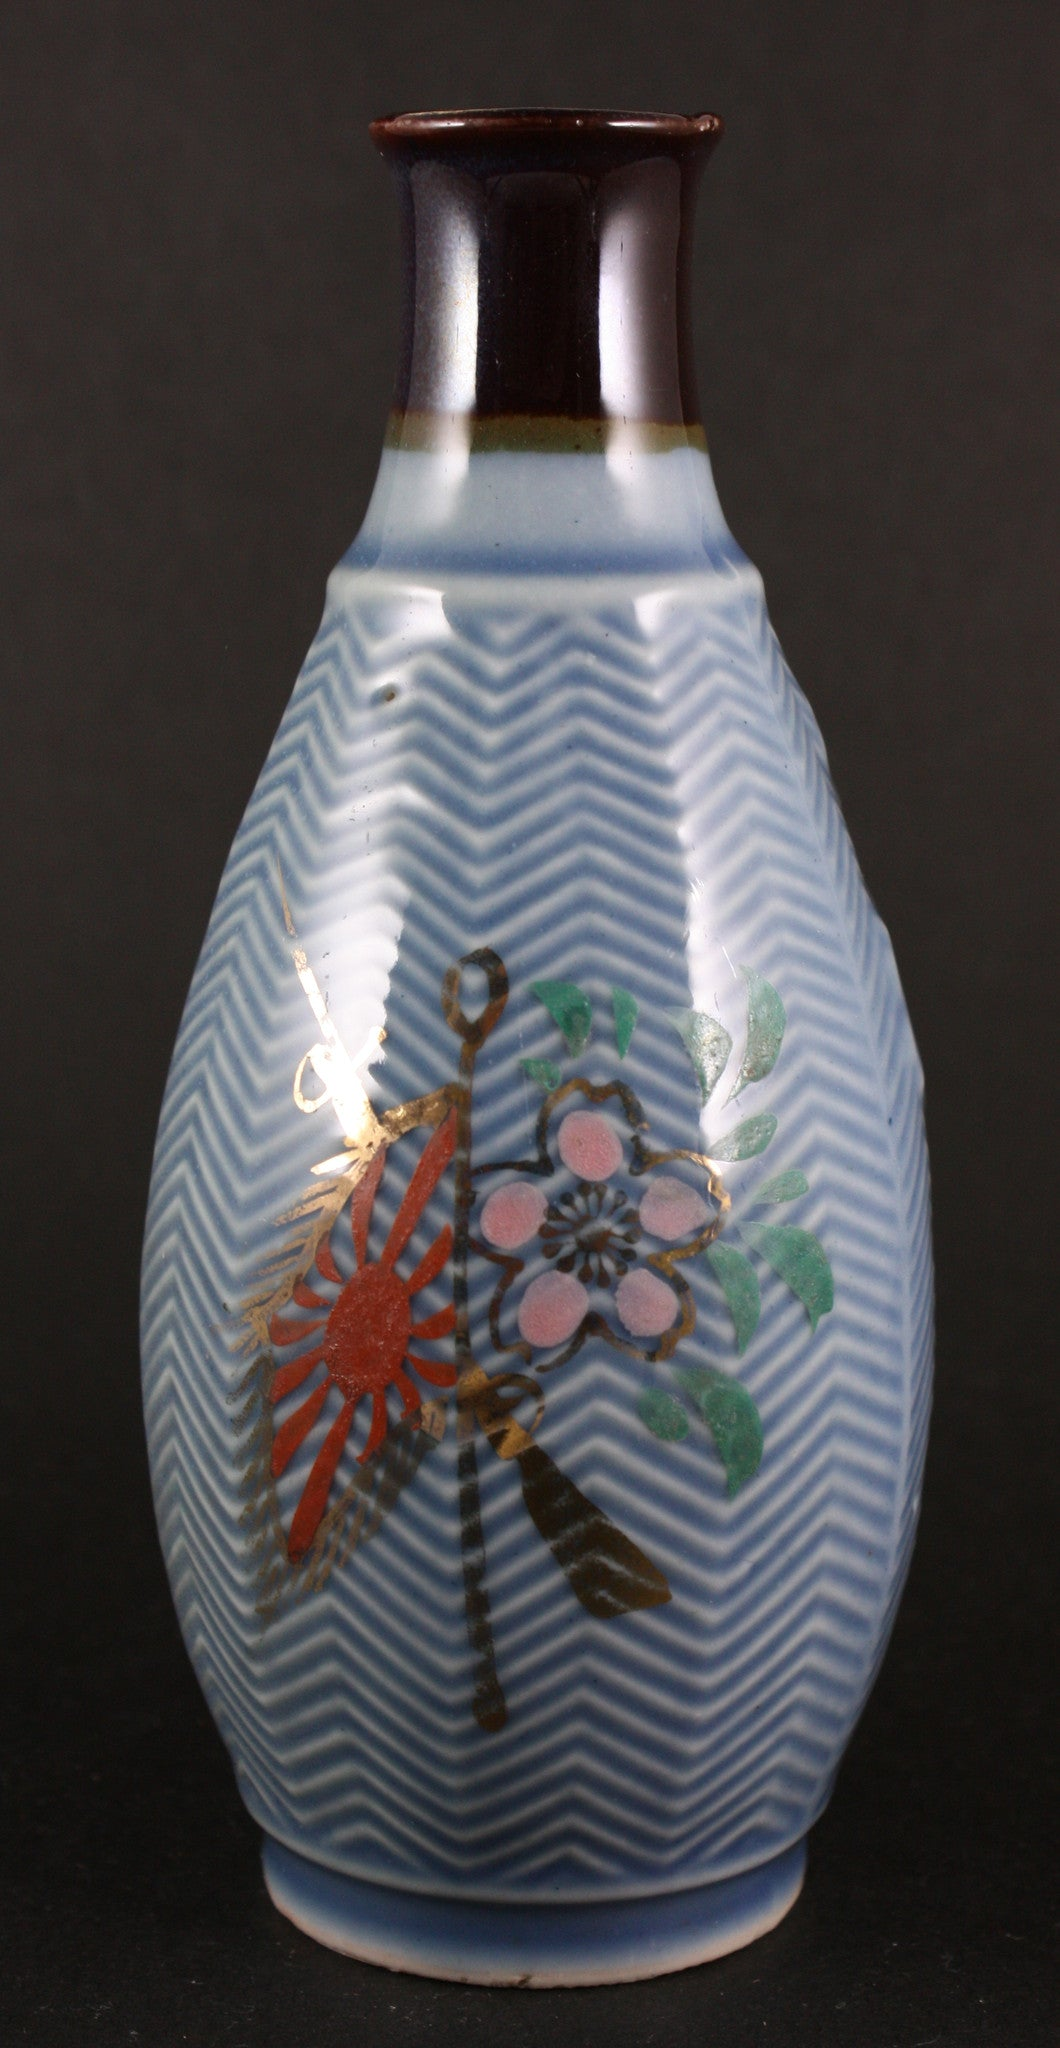 Antique Japanese Northern Manchuria Garrison Army Sake Bottle